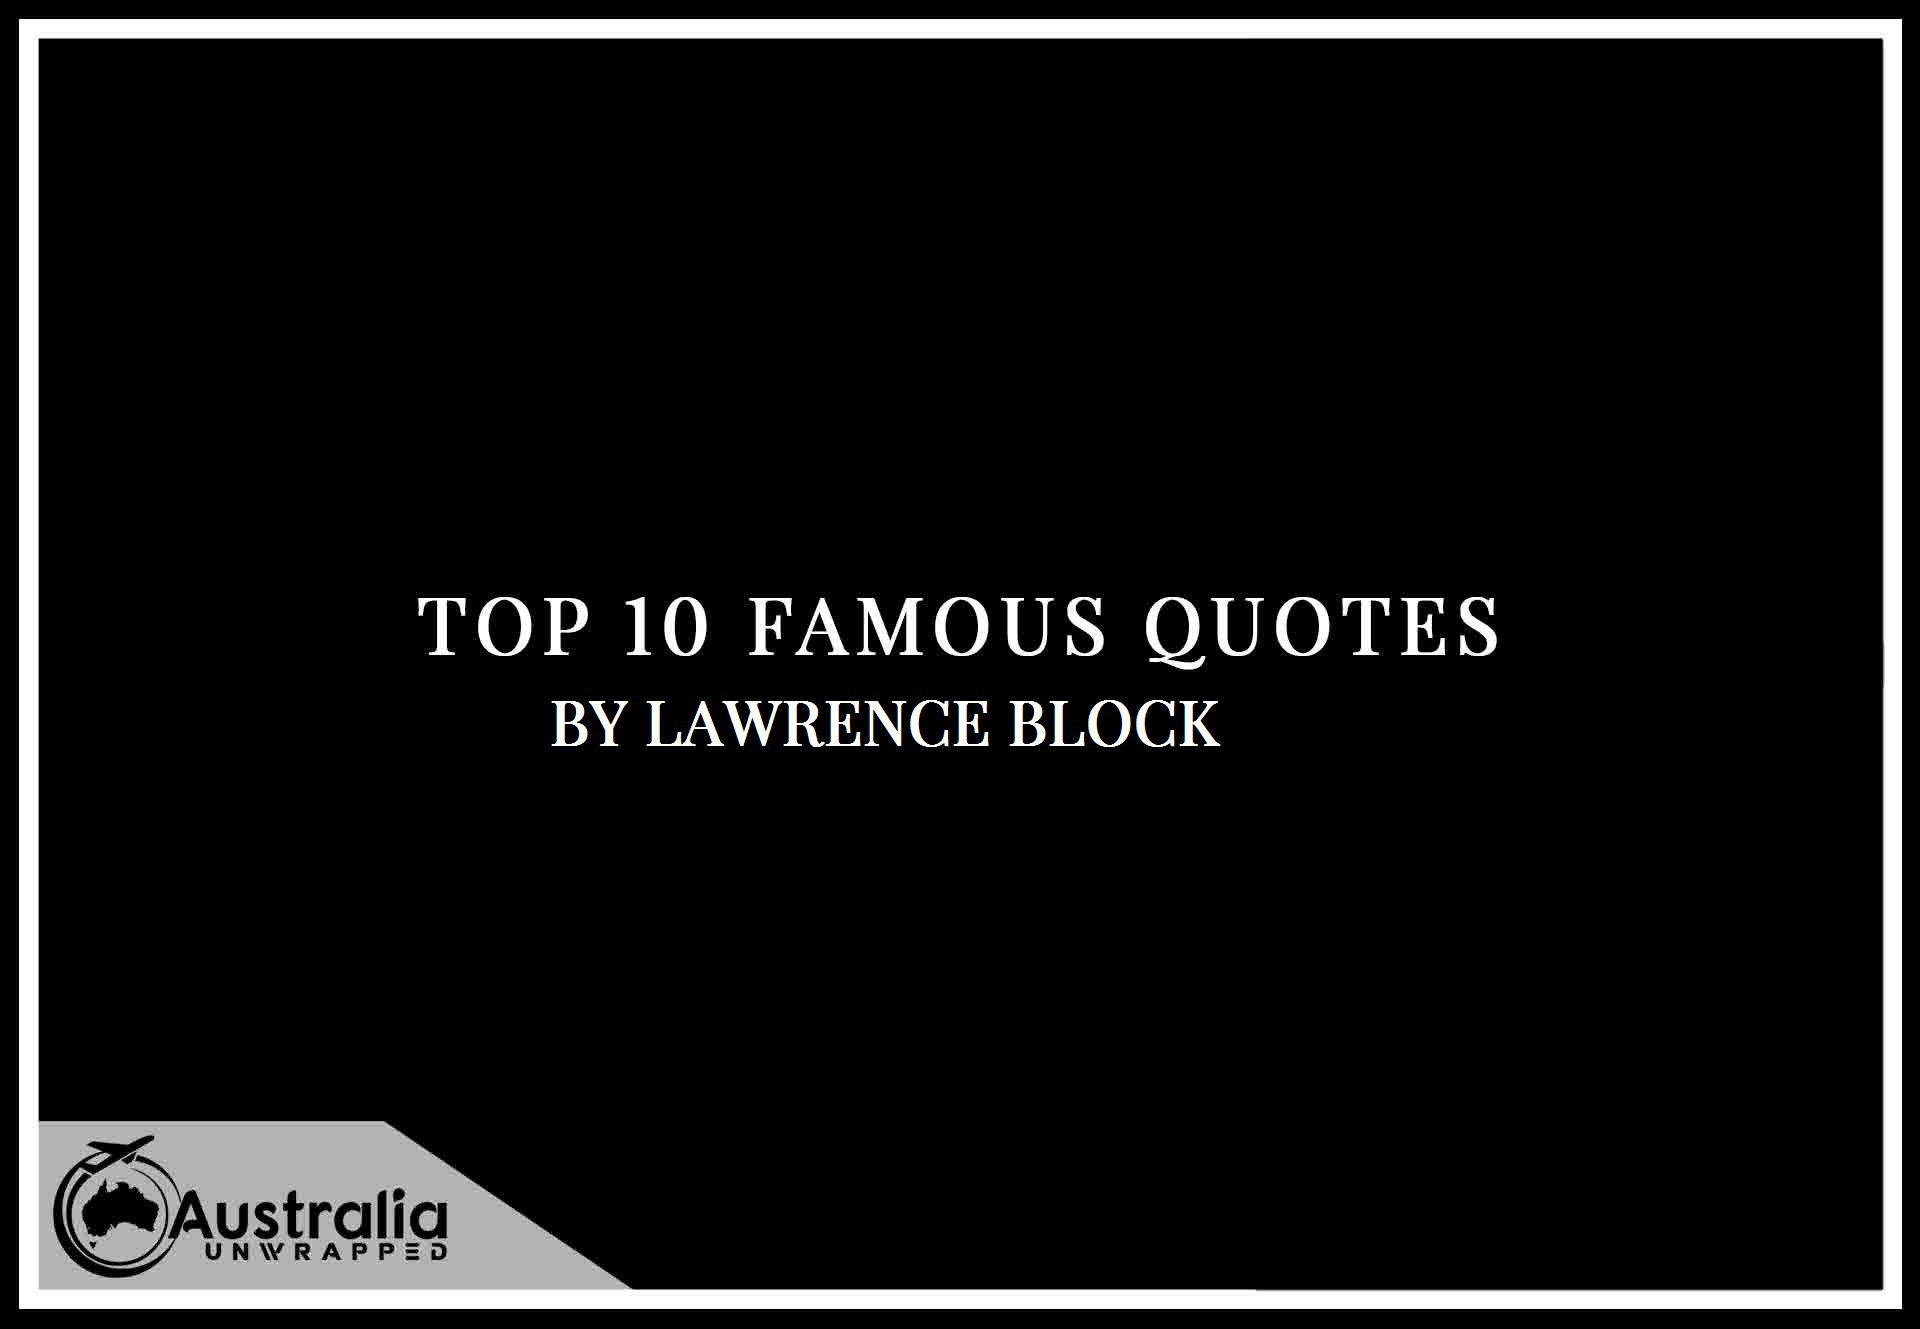 Lawrence Block's Top 10 Popular and Famous Quotes